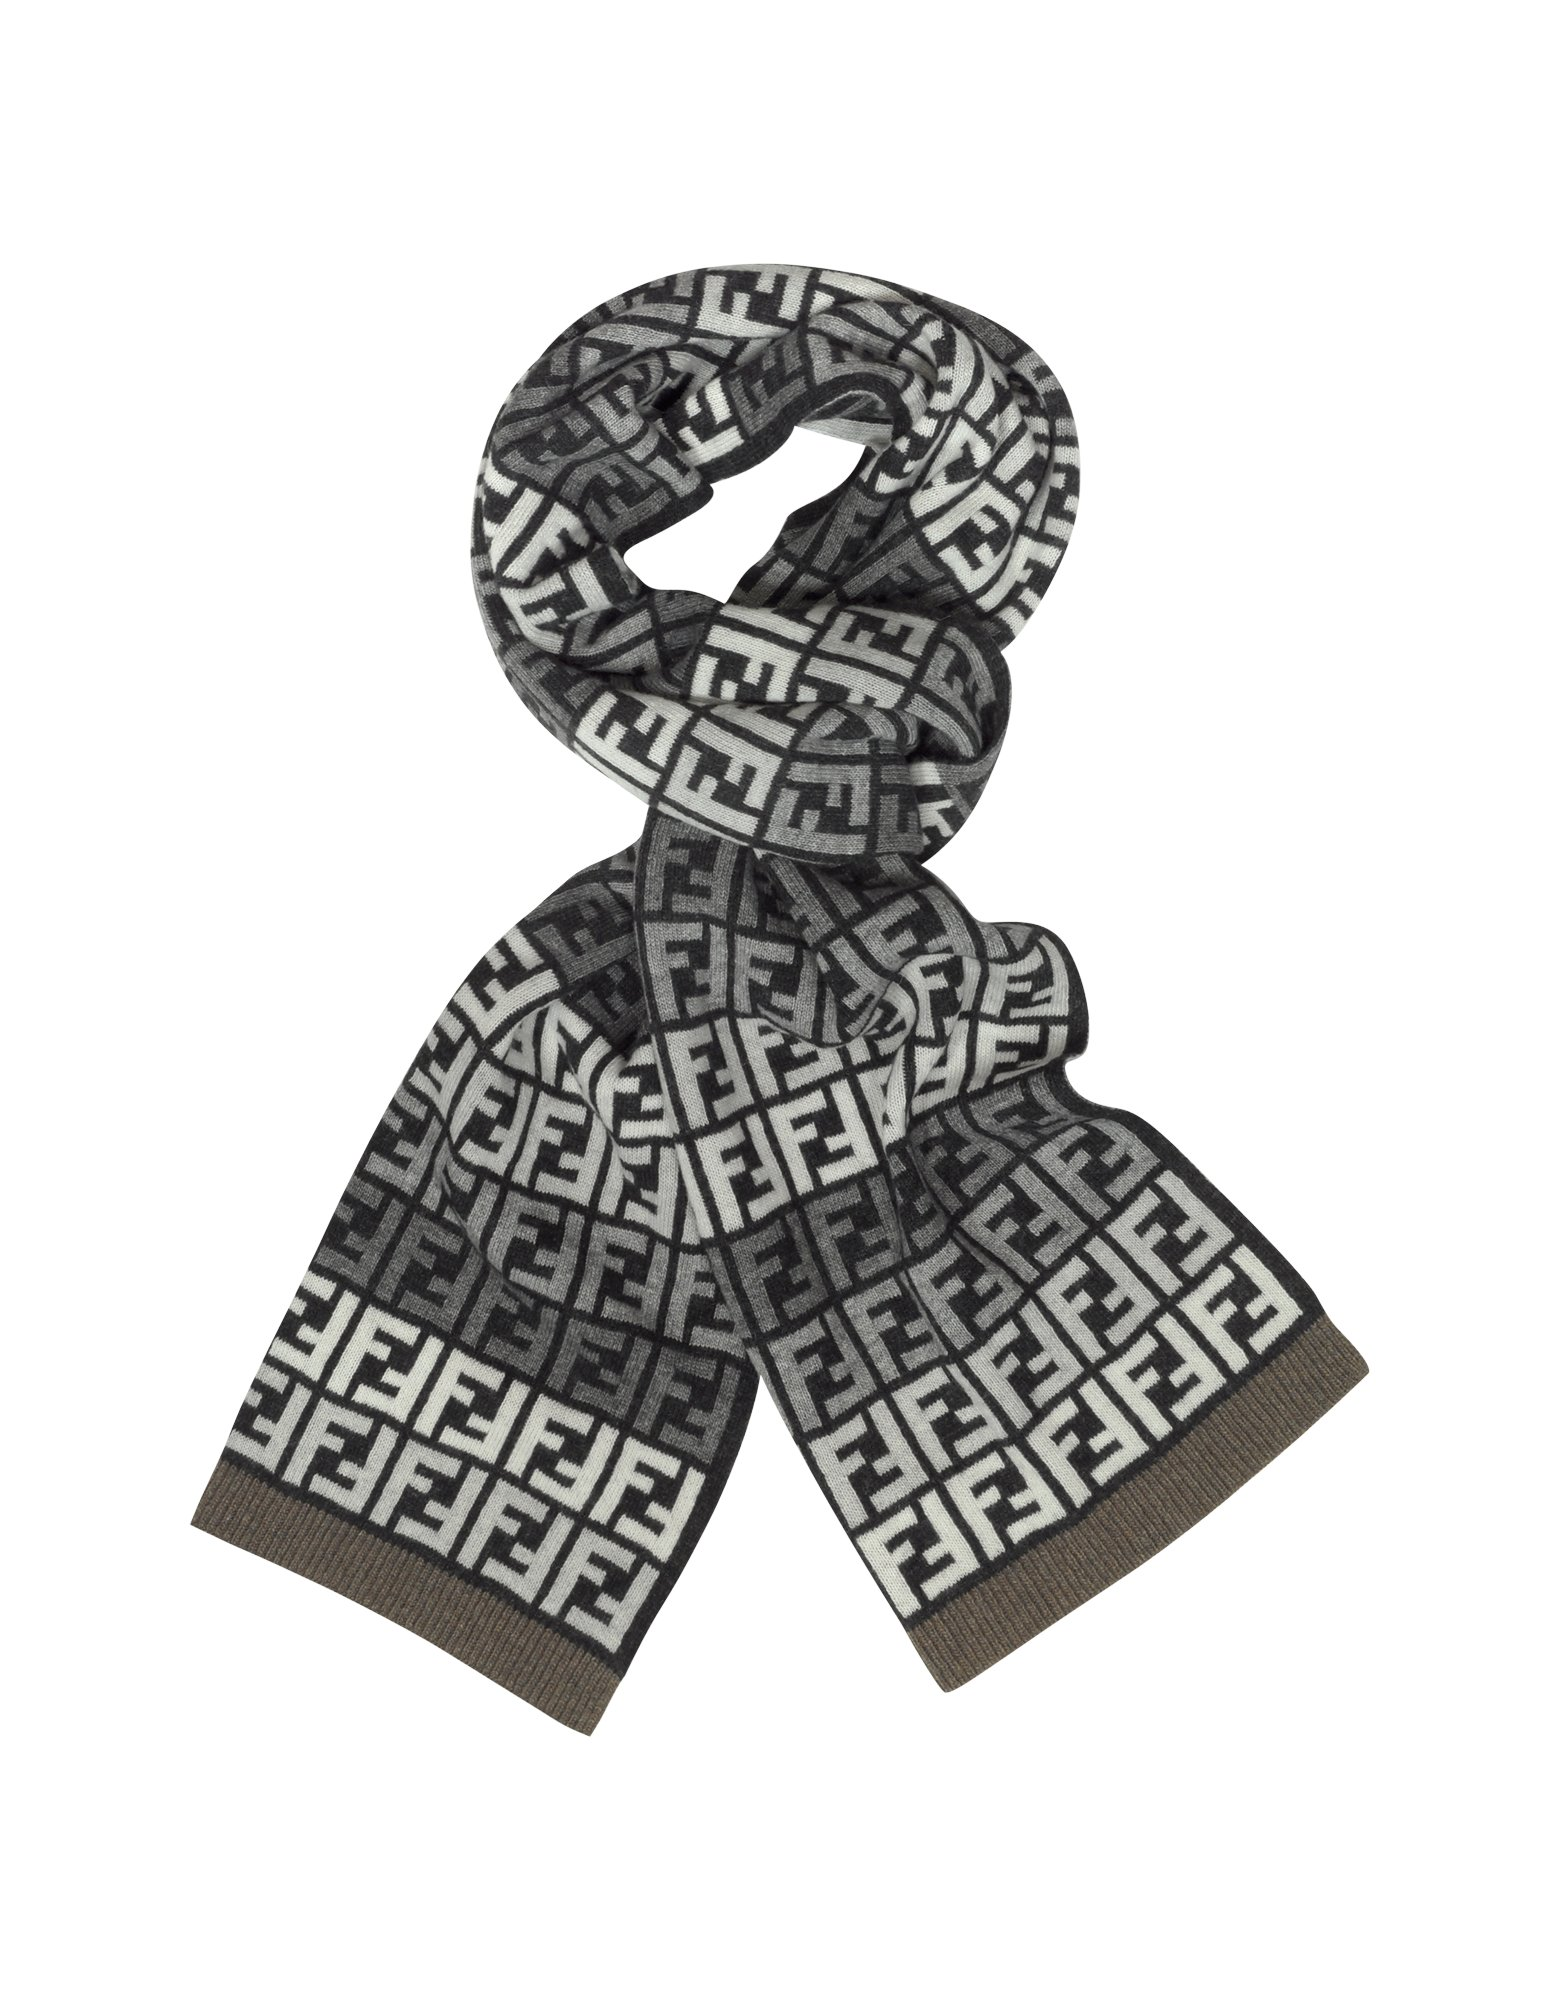 f92ee4bf4c3 ... promo code for lyst fendi all over zucca logo jacquard knit wool scarf  in gray 3f67a